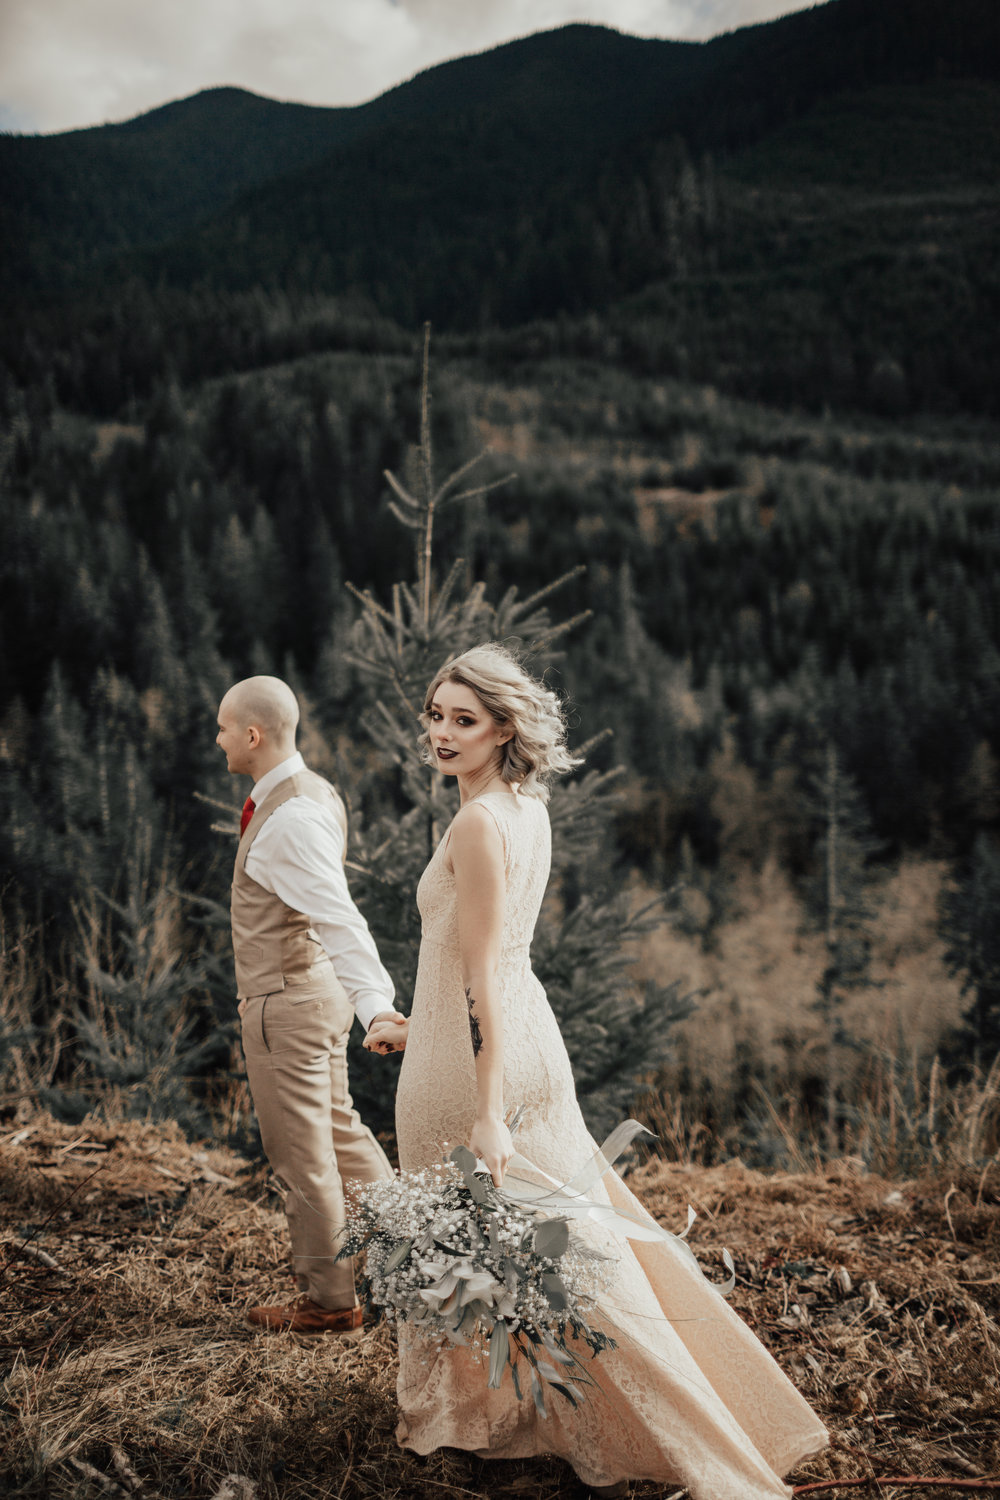 Port Angeles-PNW-Sequim-Portrait-wedding-elopement-photographer-kayladawnphoto-kayla dawn photography-olympic peninsula-portraiture12.jpg